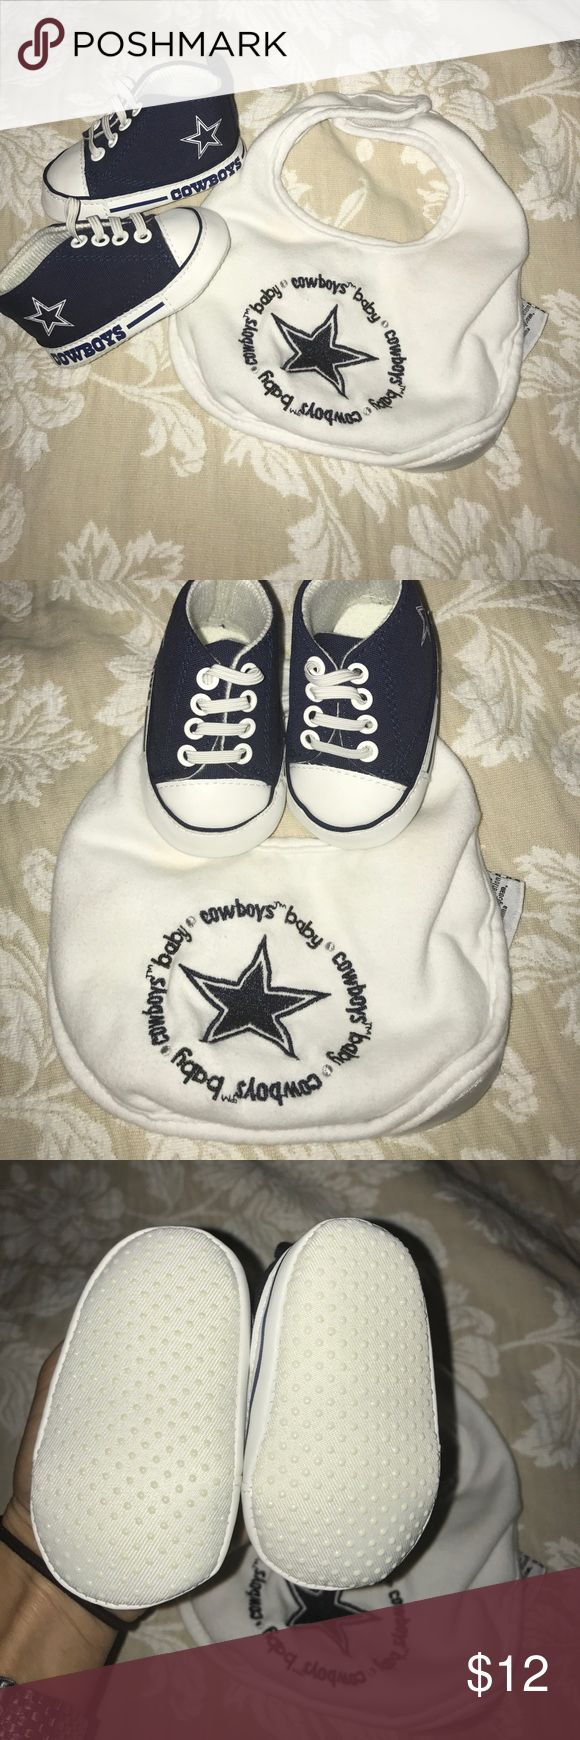 Dallas Cowboys Bib and Baby Shoes Adorable for your mini Dallas fan. Shoes are 0-6 months Shoes